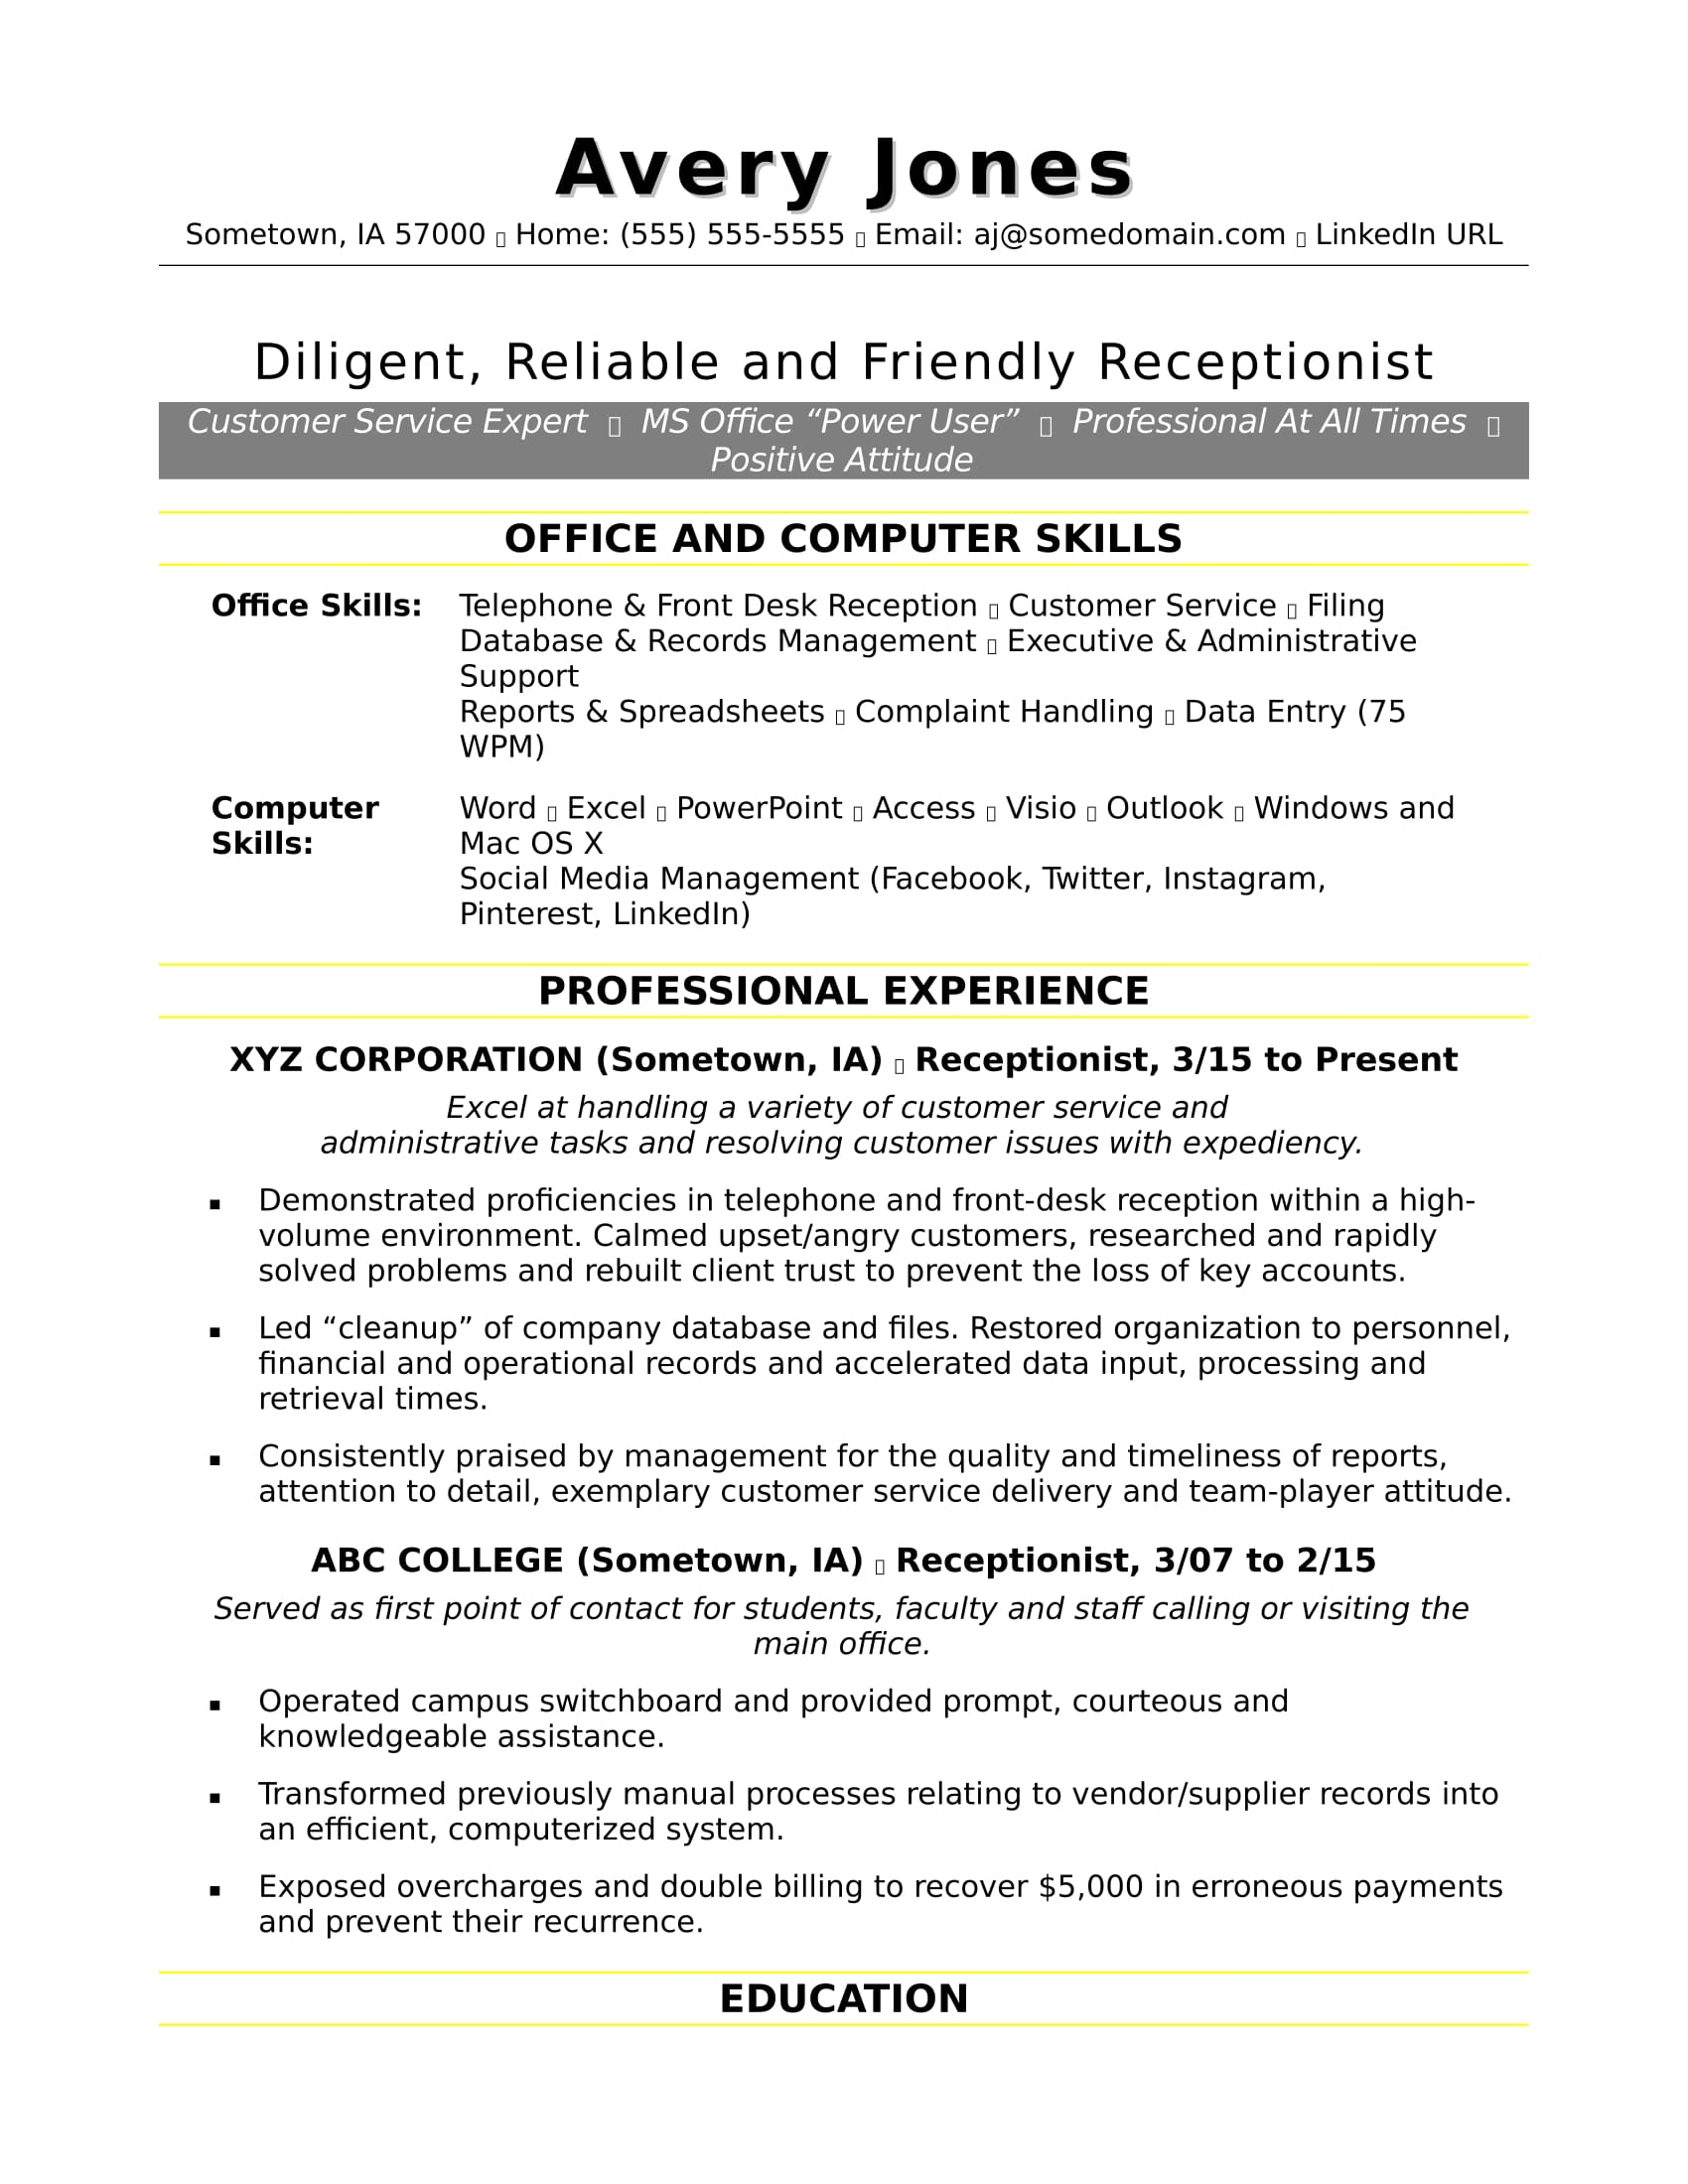 cv example uk receptionist